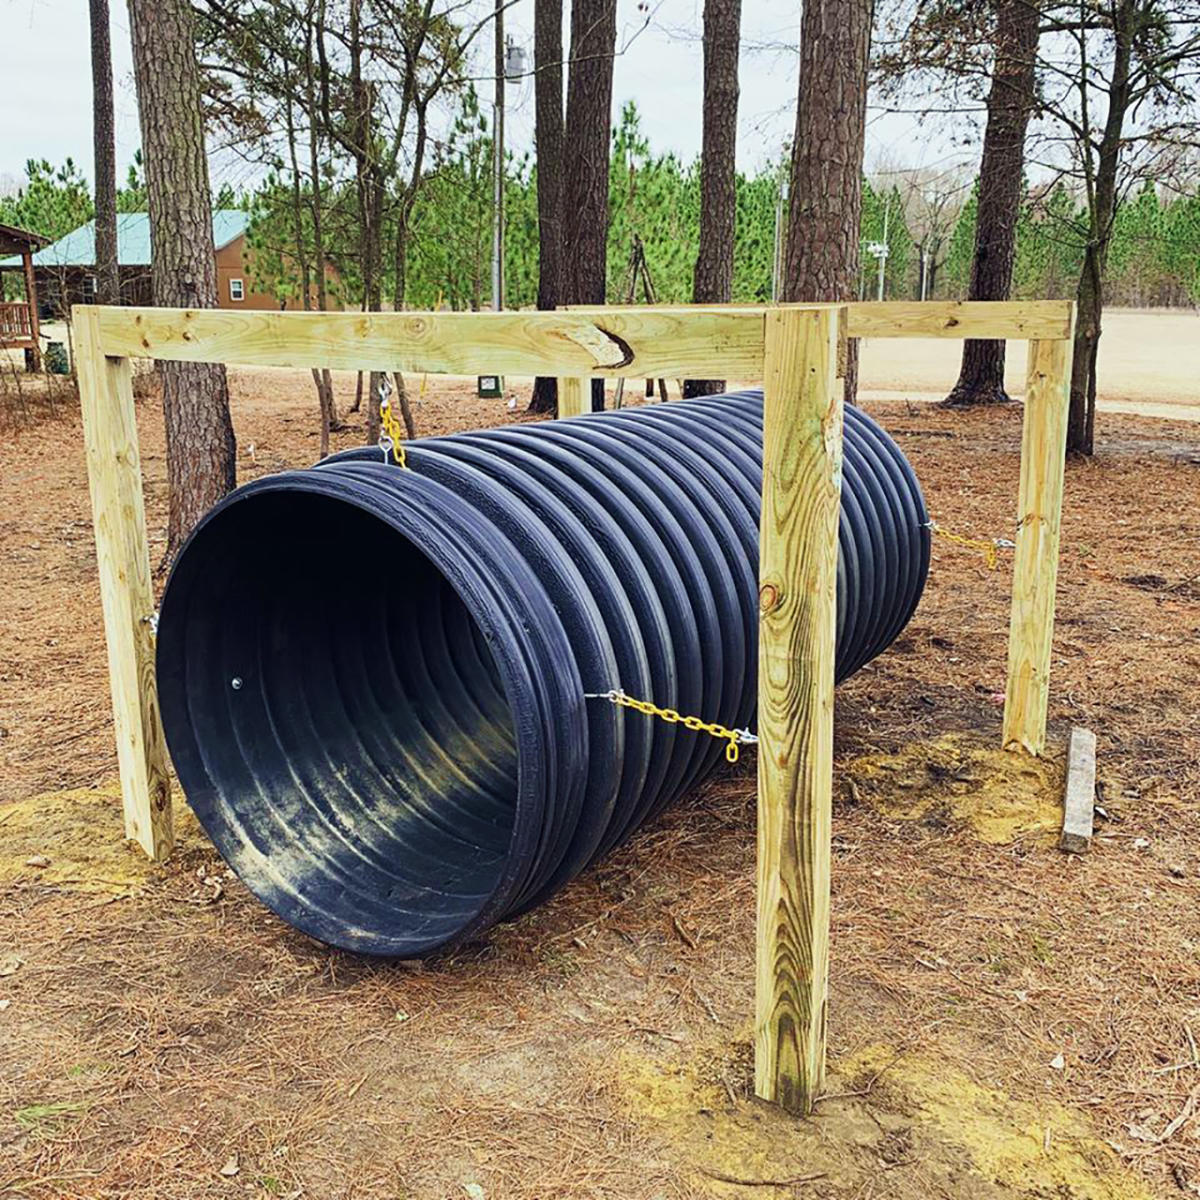 Howell Woods New Play Area offering young visitors a new place to play.